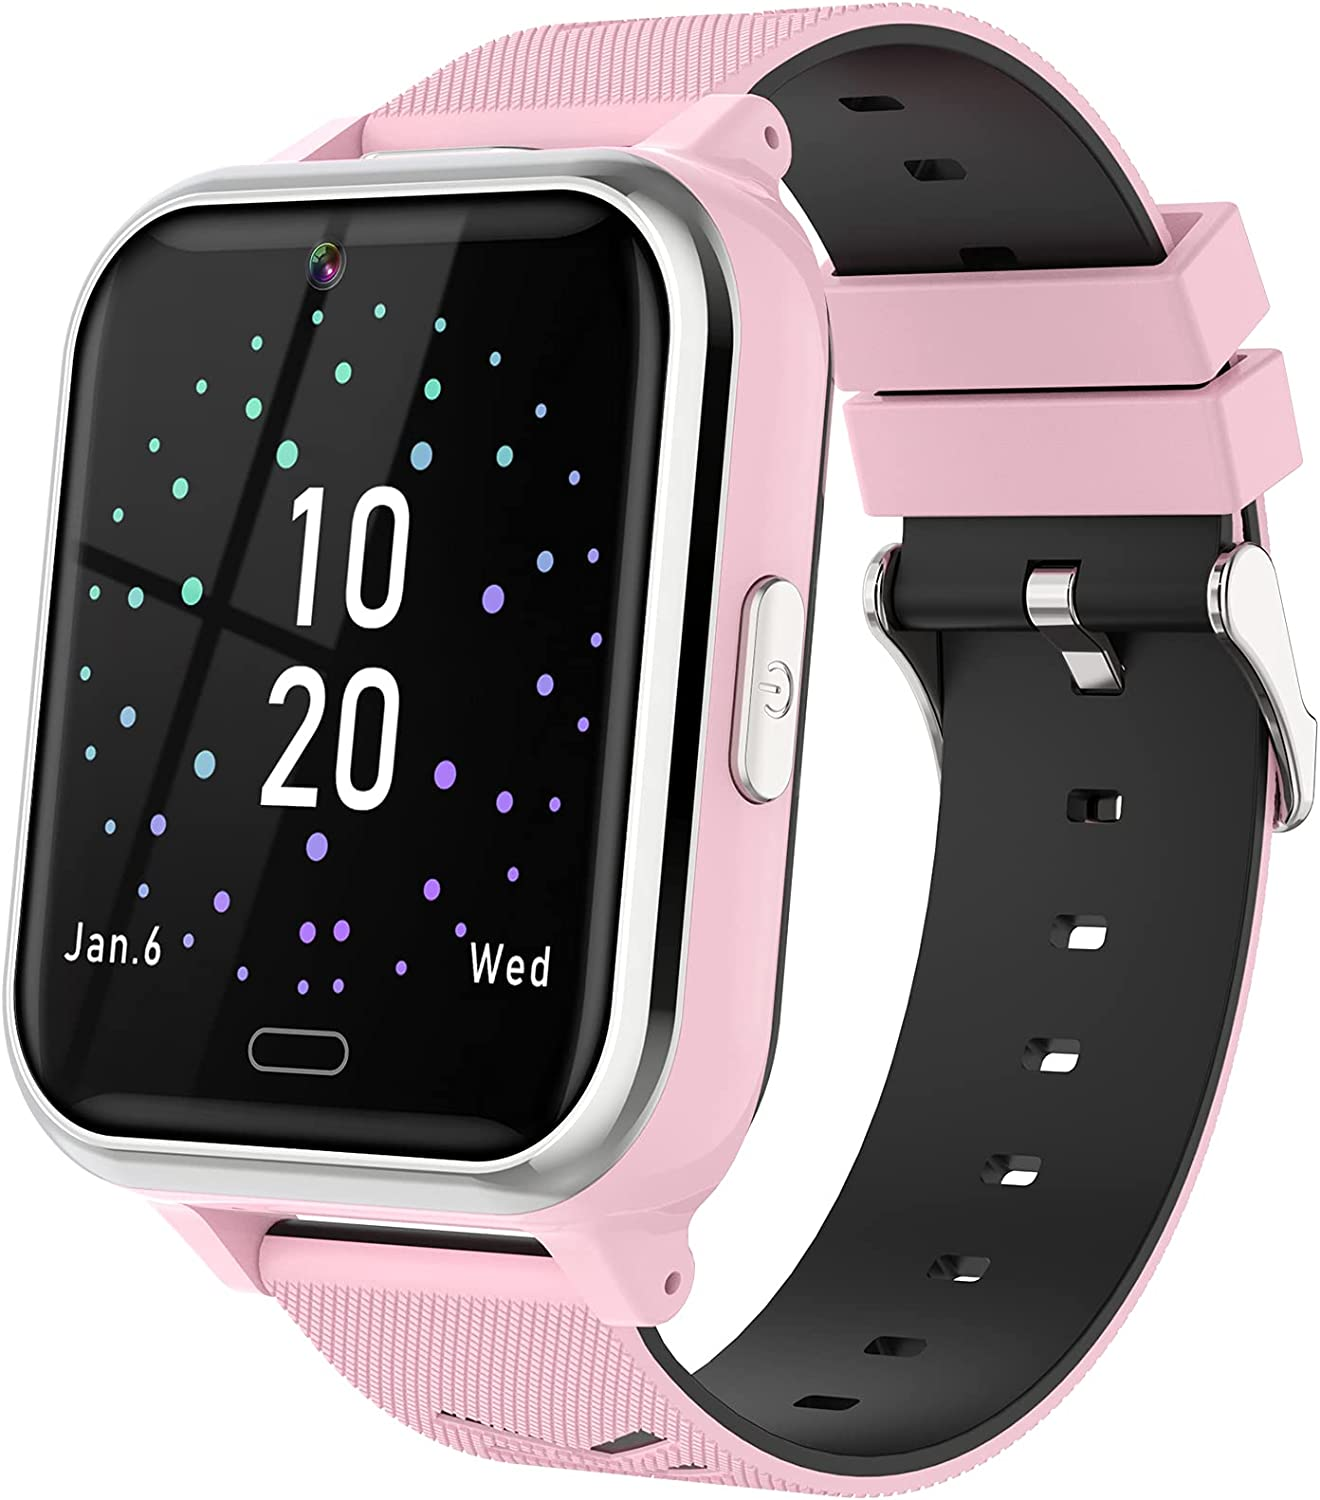 Kids Smart Watch with Dual Camera 17 Games Alarm Clock Calculator Music Torch Video Player Recorder for 4-12 Years Boys Girls Birthday Gifts Electronic Learning Education Toys (Pink)